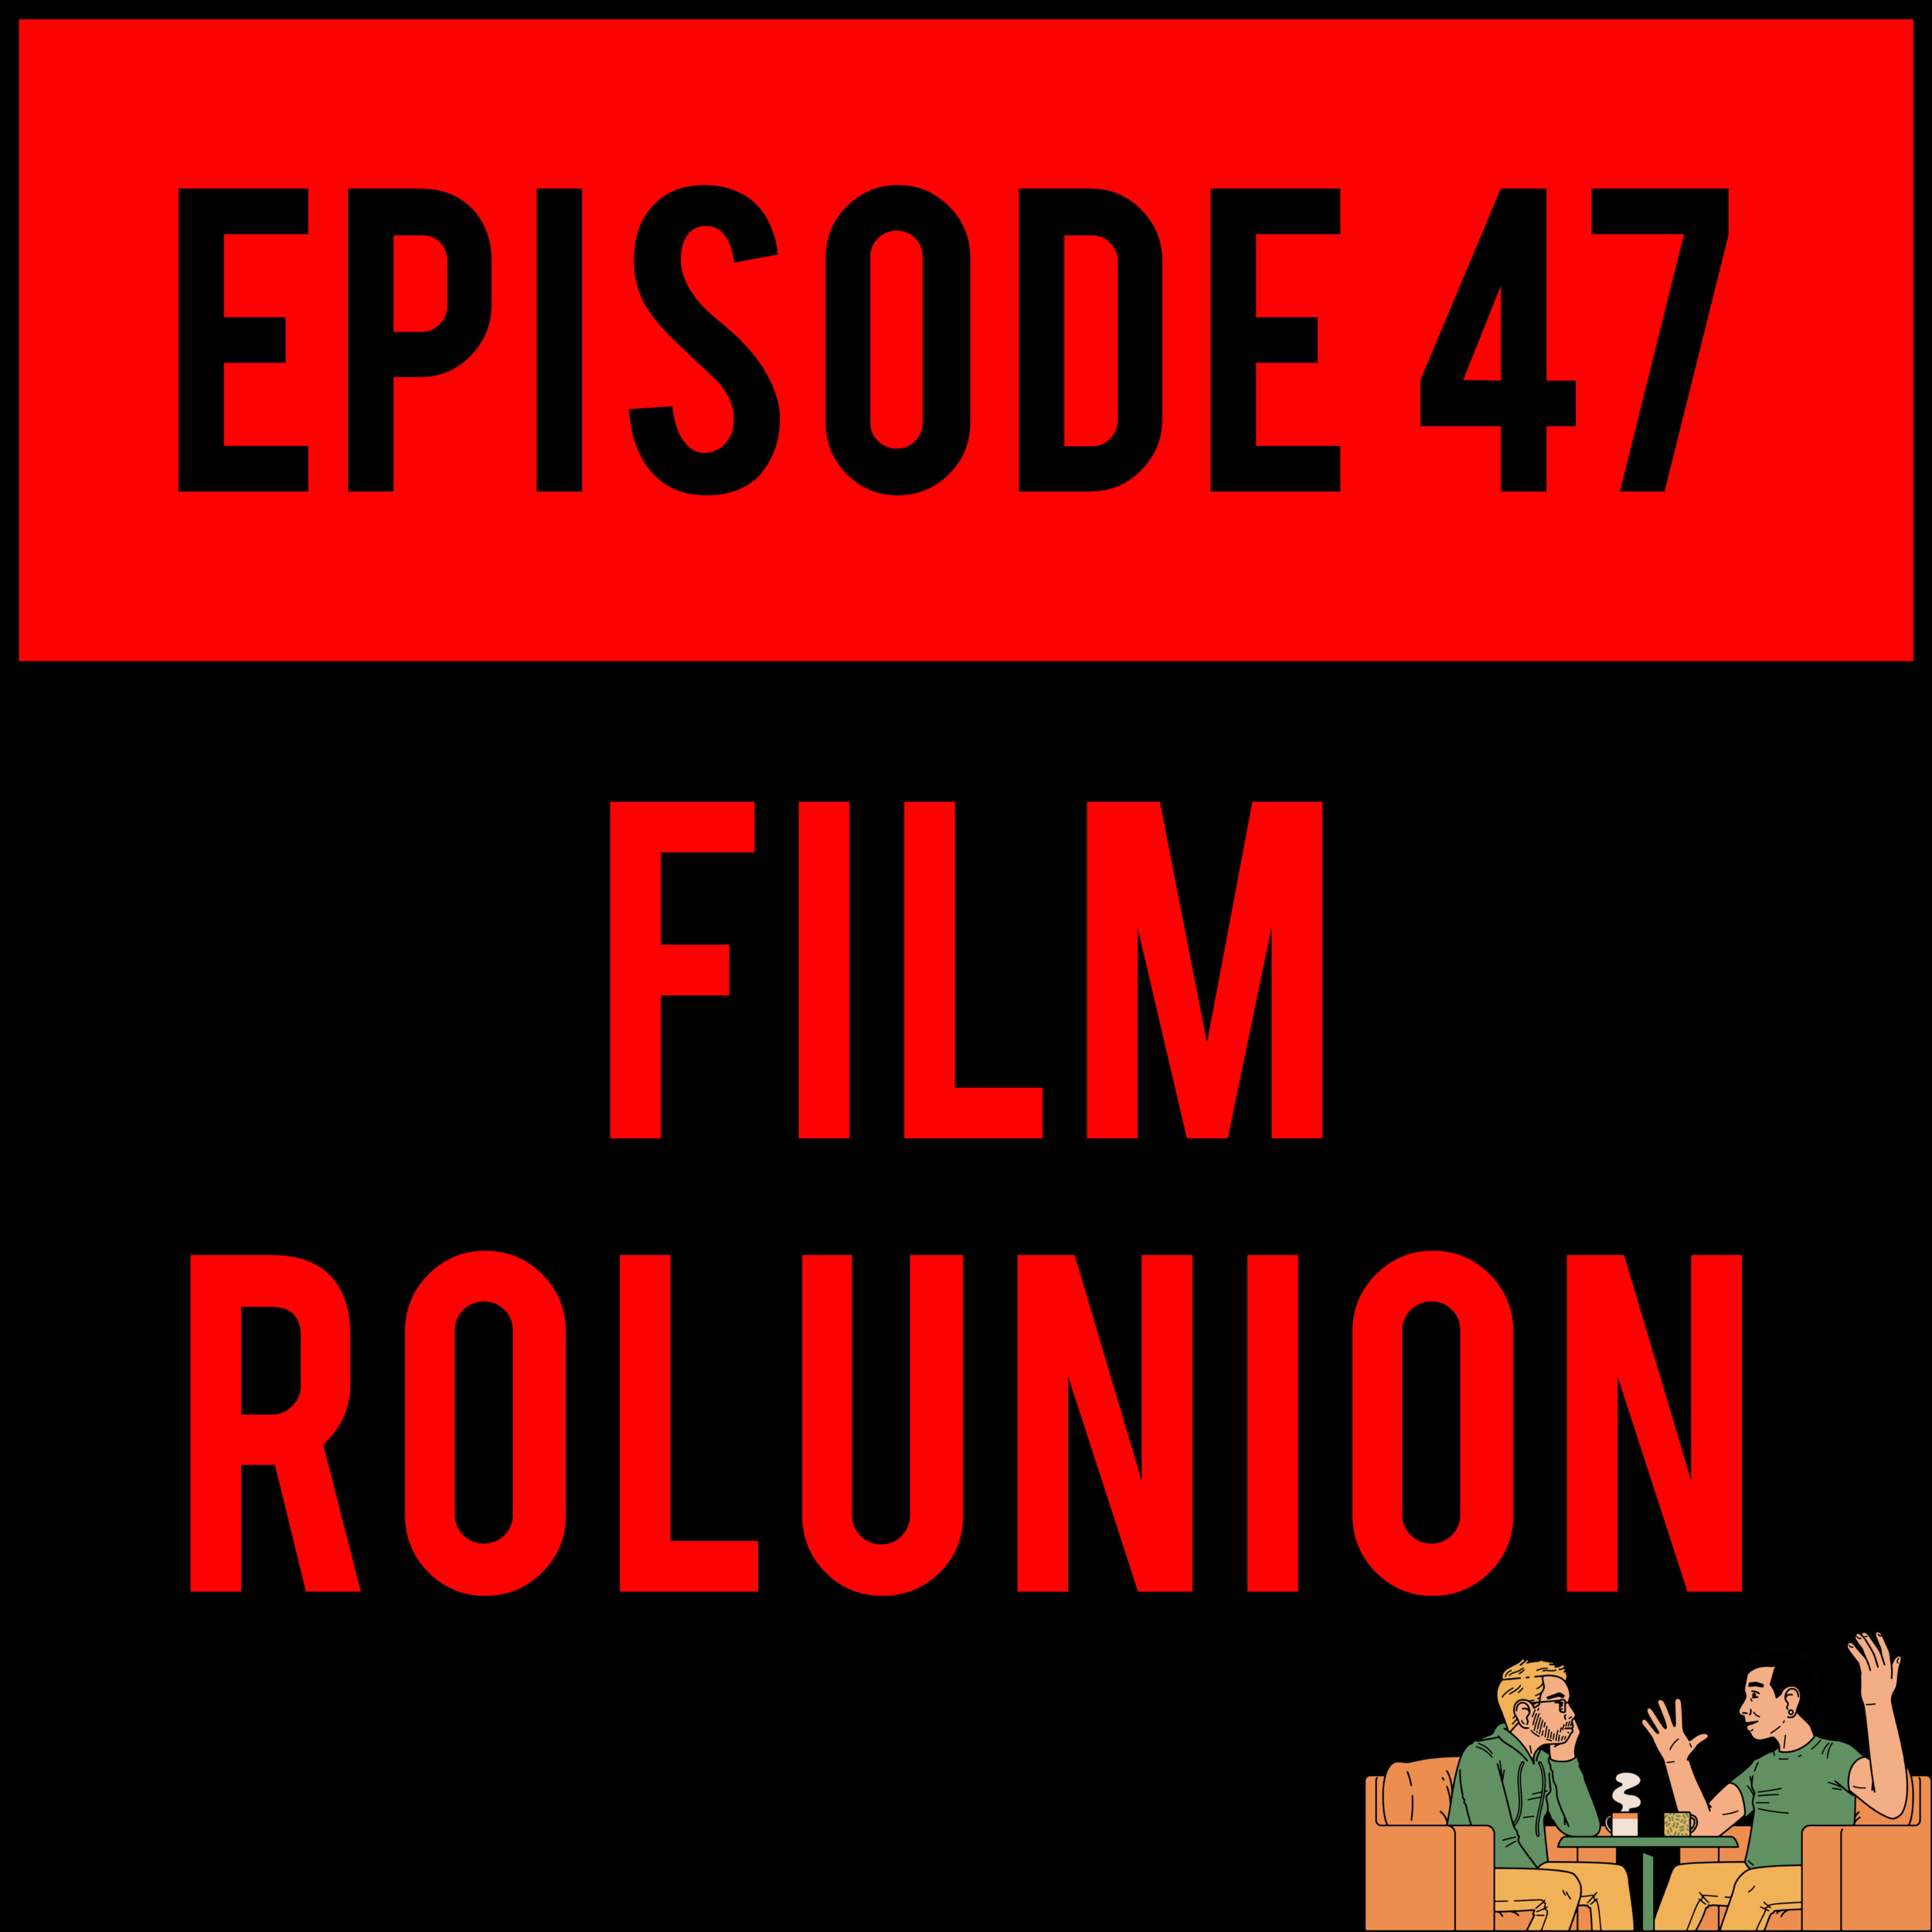 """EPISODE 47 - Those Film Hole Boyz are back and wetter than ever.Brandon Karliscouldn't go 18 seconds without a smoke break,Patrick Hunter calls actor Lakeith Stanfield """"Layketh"""",Robbie Clark is completely off his rocker about Logan (like he always is),Alex gets sloppy day drunk andJustyndoes a terrible job of hosting it all. It's literally everything you love about IDIOTSYNCRATIC andThe Film Role Podcast! FILM ROLUNION - EPISODE 47 is making podcasting worse again!"""